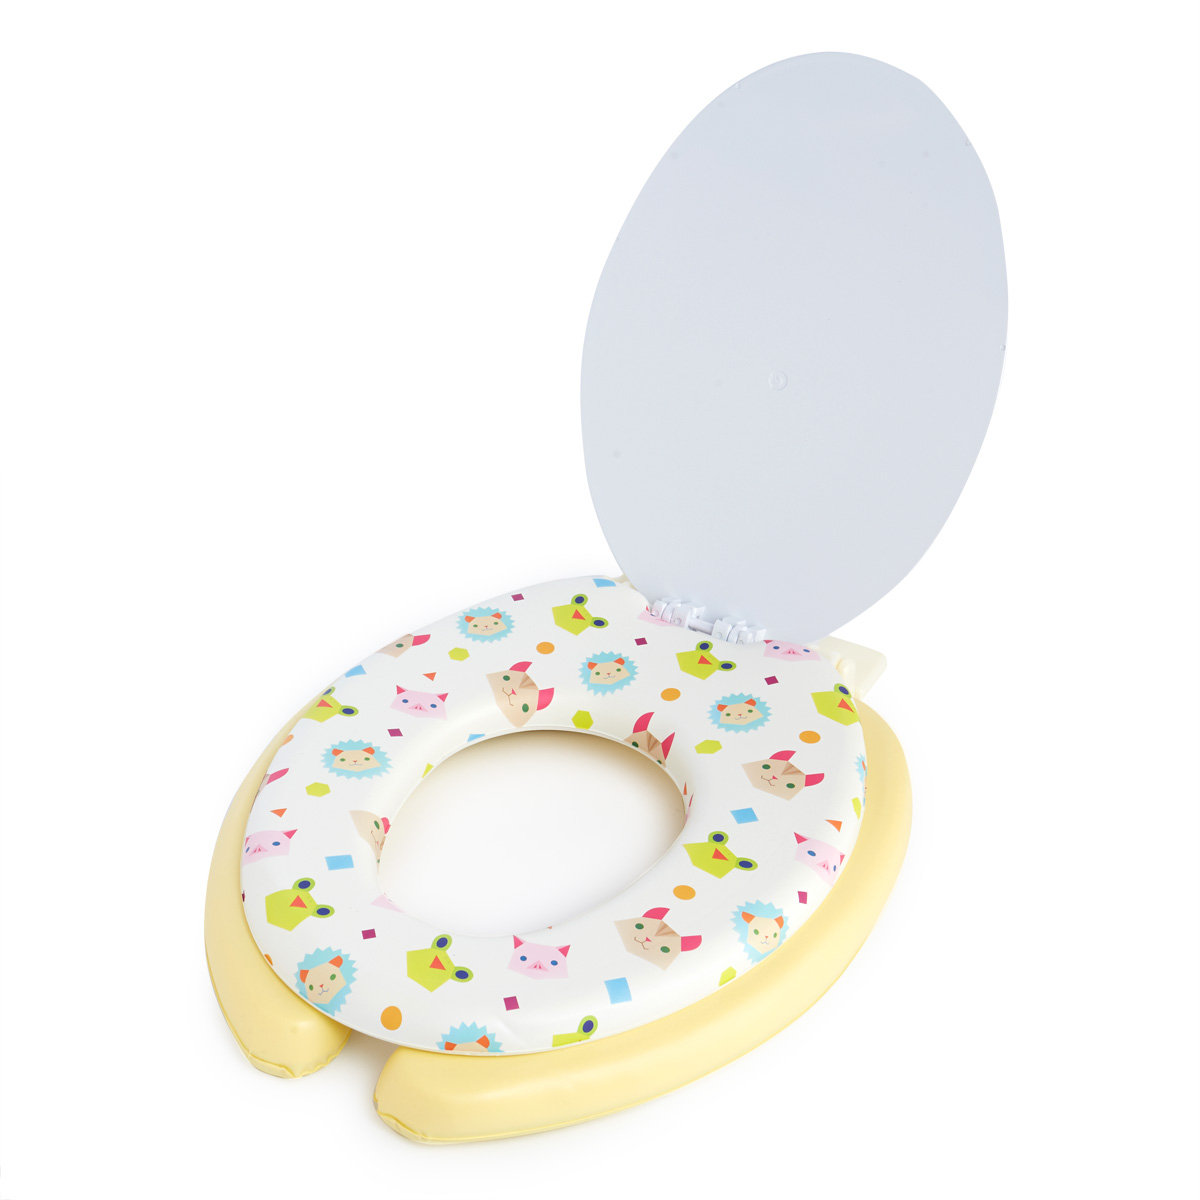 SOFT TOILET SEAT (2 IN 1) U-TYPE